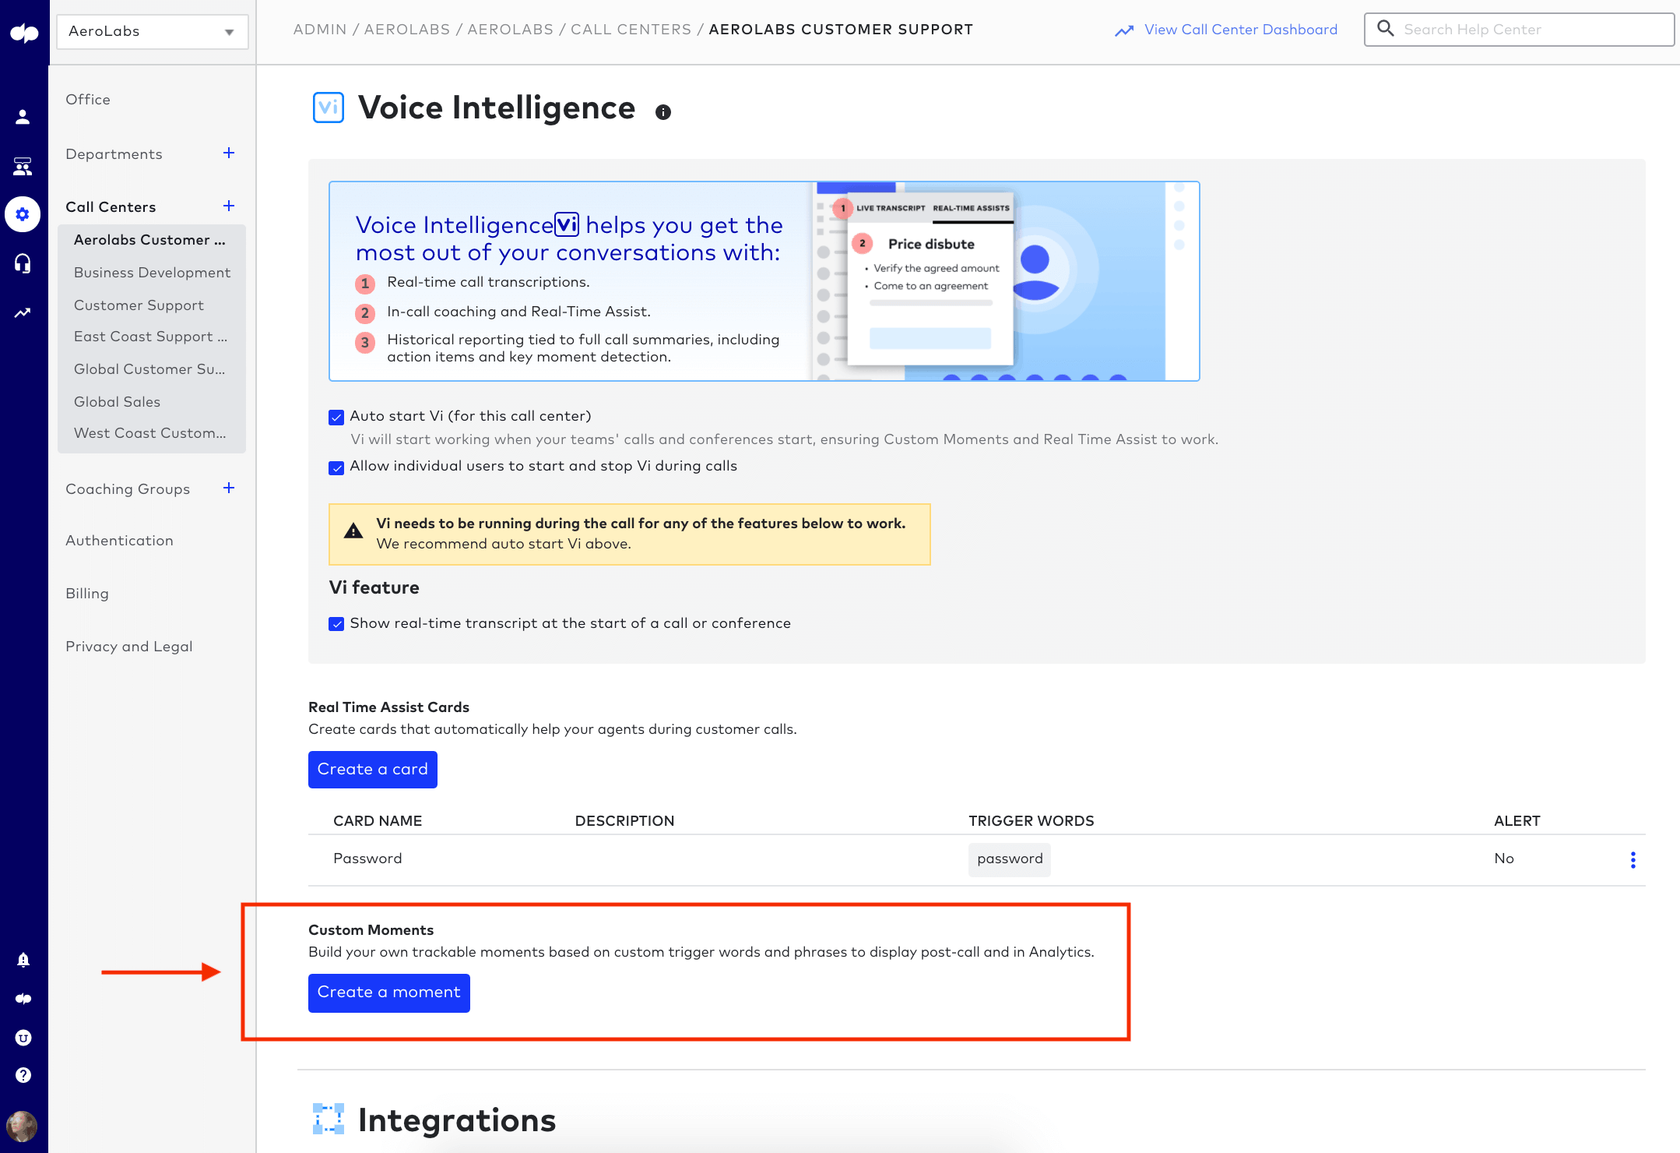 how to create a custom moments using dialpad voice intelligence